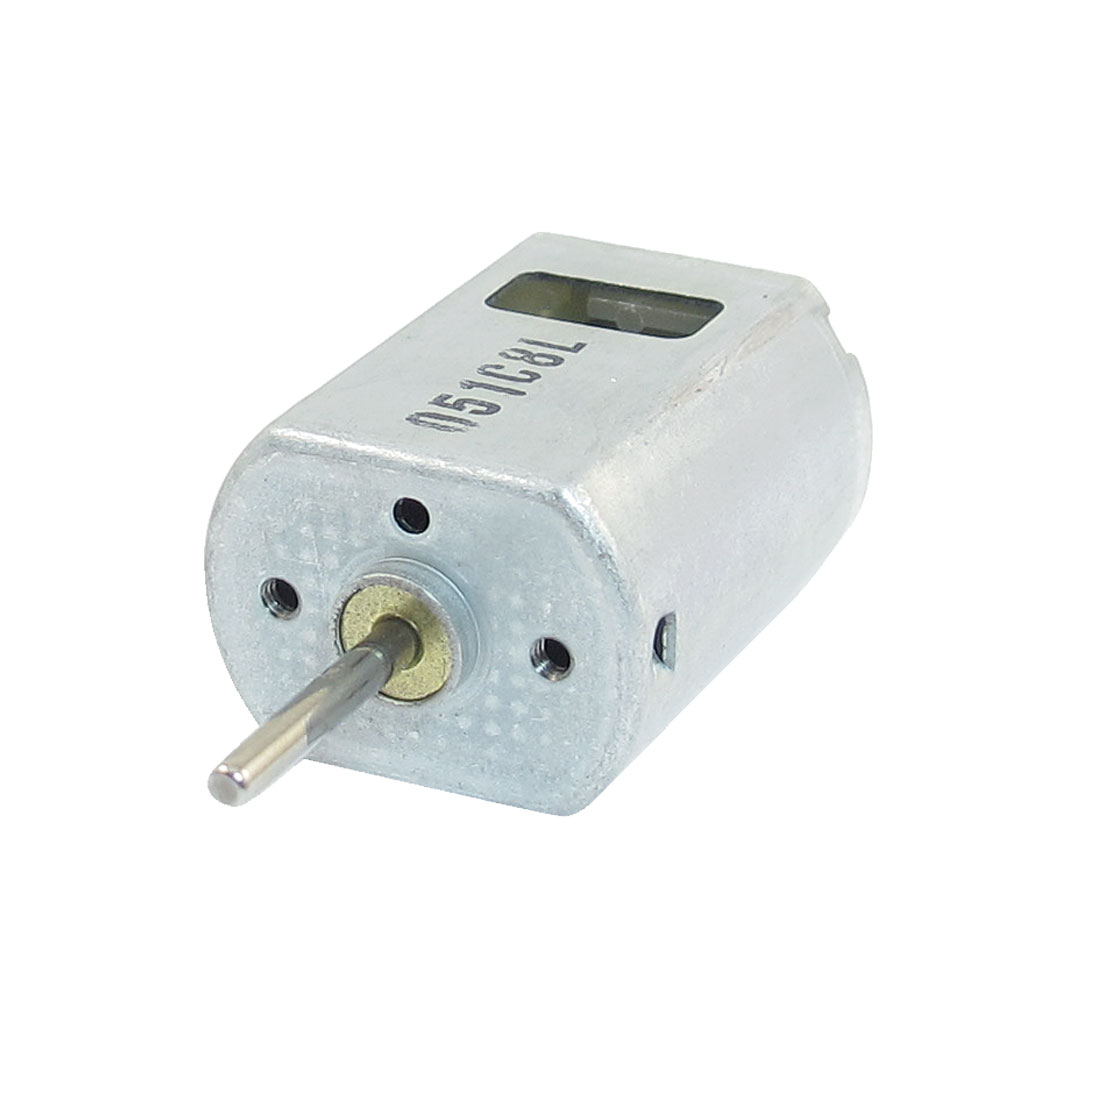 20000RPM-1-5-3V-High-Speed-Electric-Miniature-DC-Motor